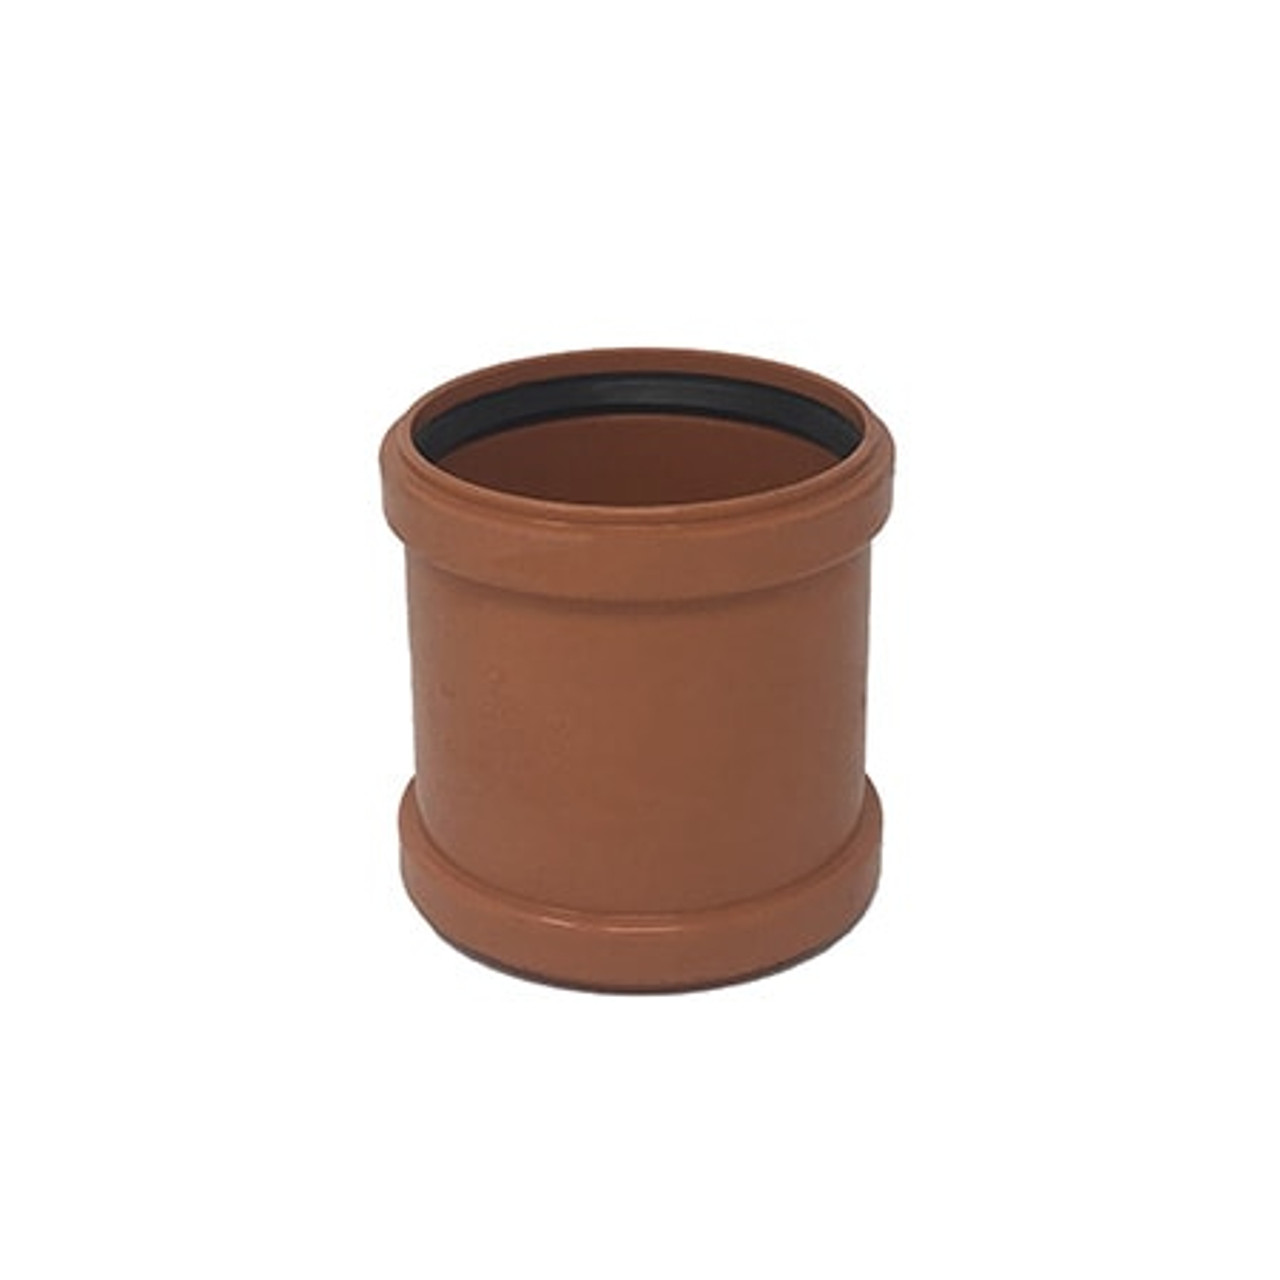 110mm Sewer Drainage Pipe Coupler.